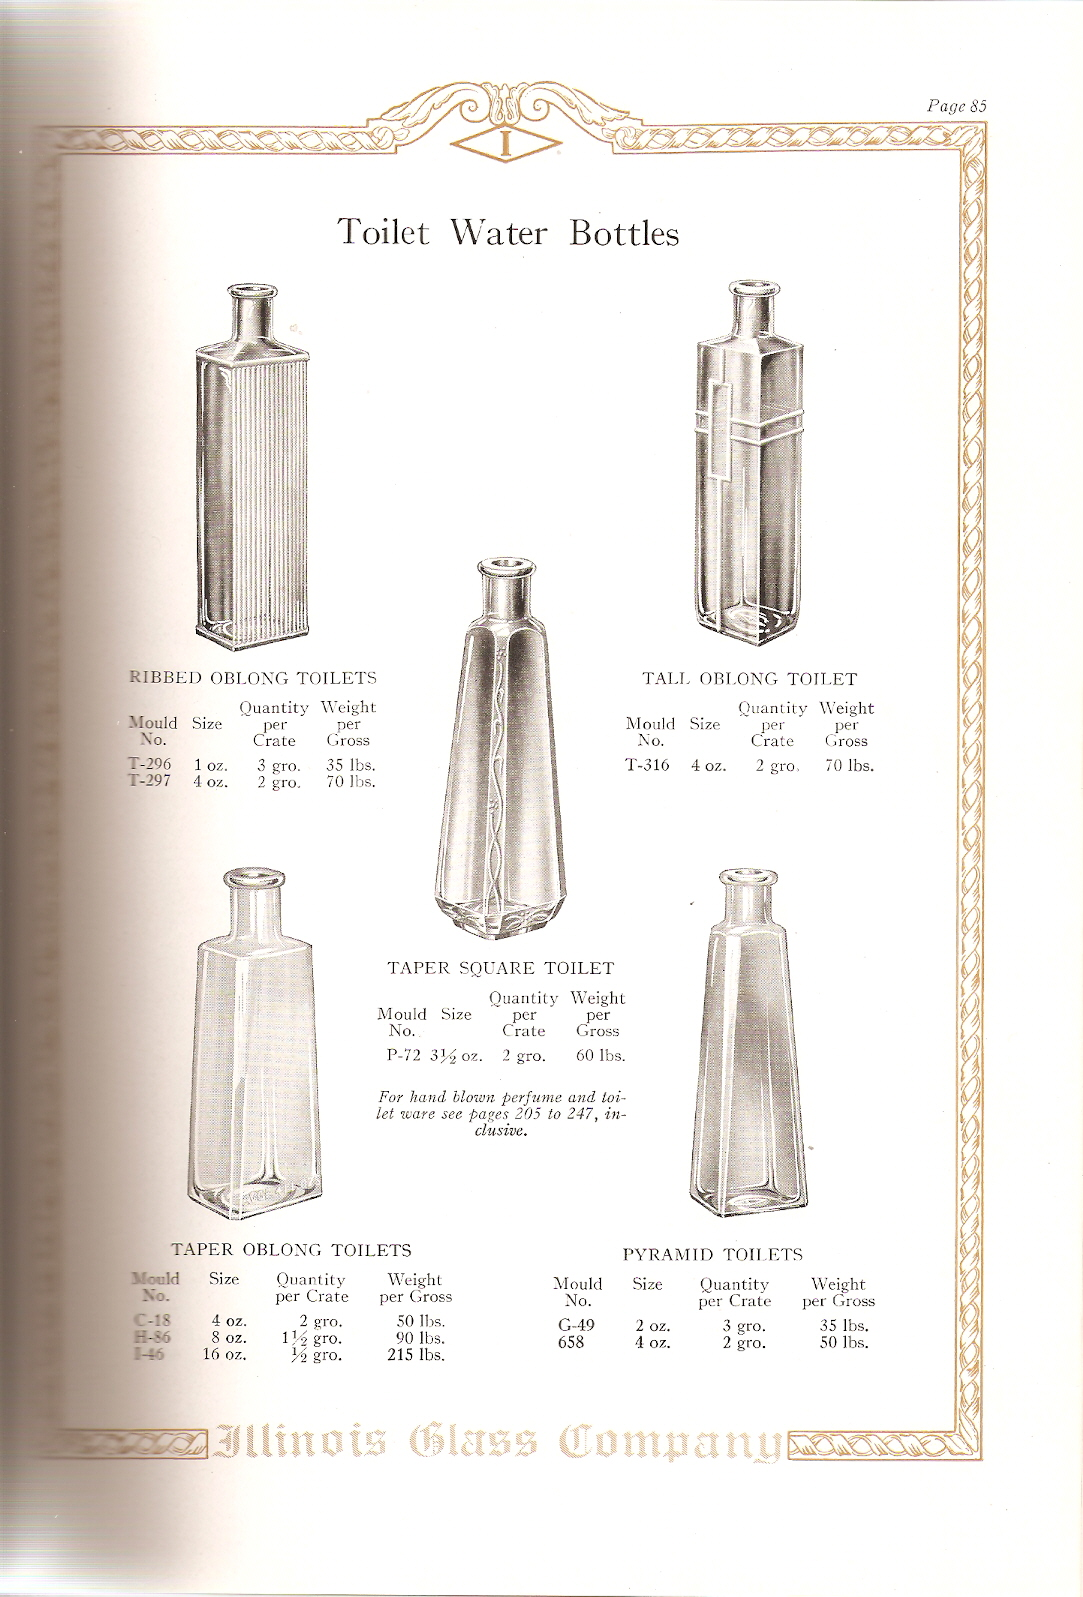 Illinois glass co 1926 catalog page 85 toilet water bottles biocorpaavc Gallery